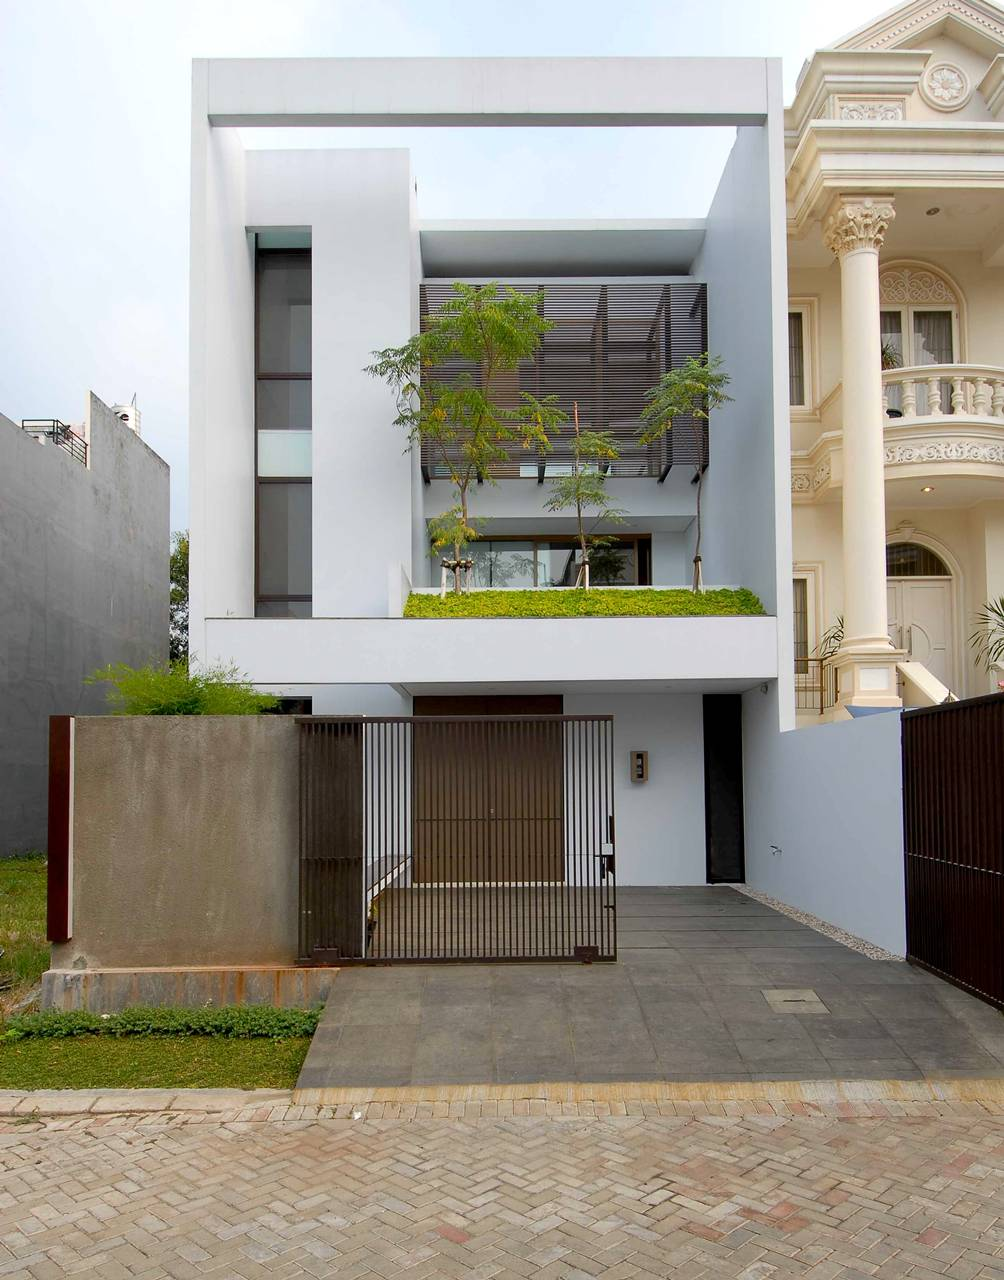 Less is more minimalism amid affluence in north jakarta for Minimalist house architecture